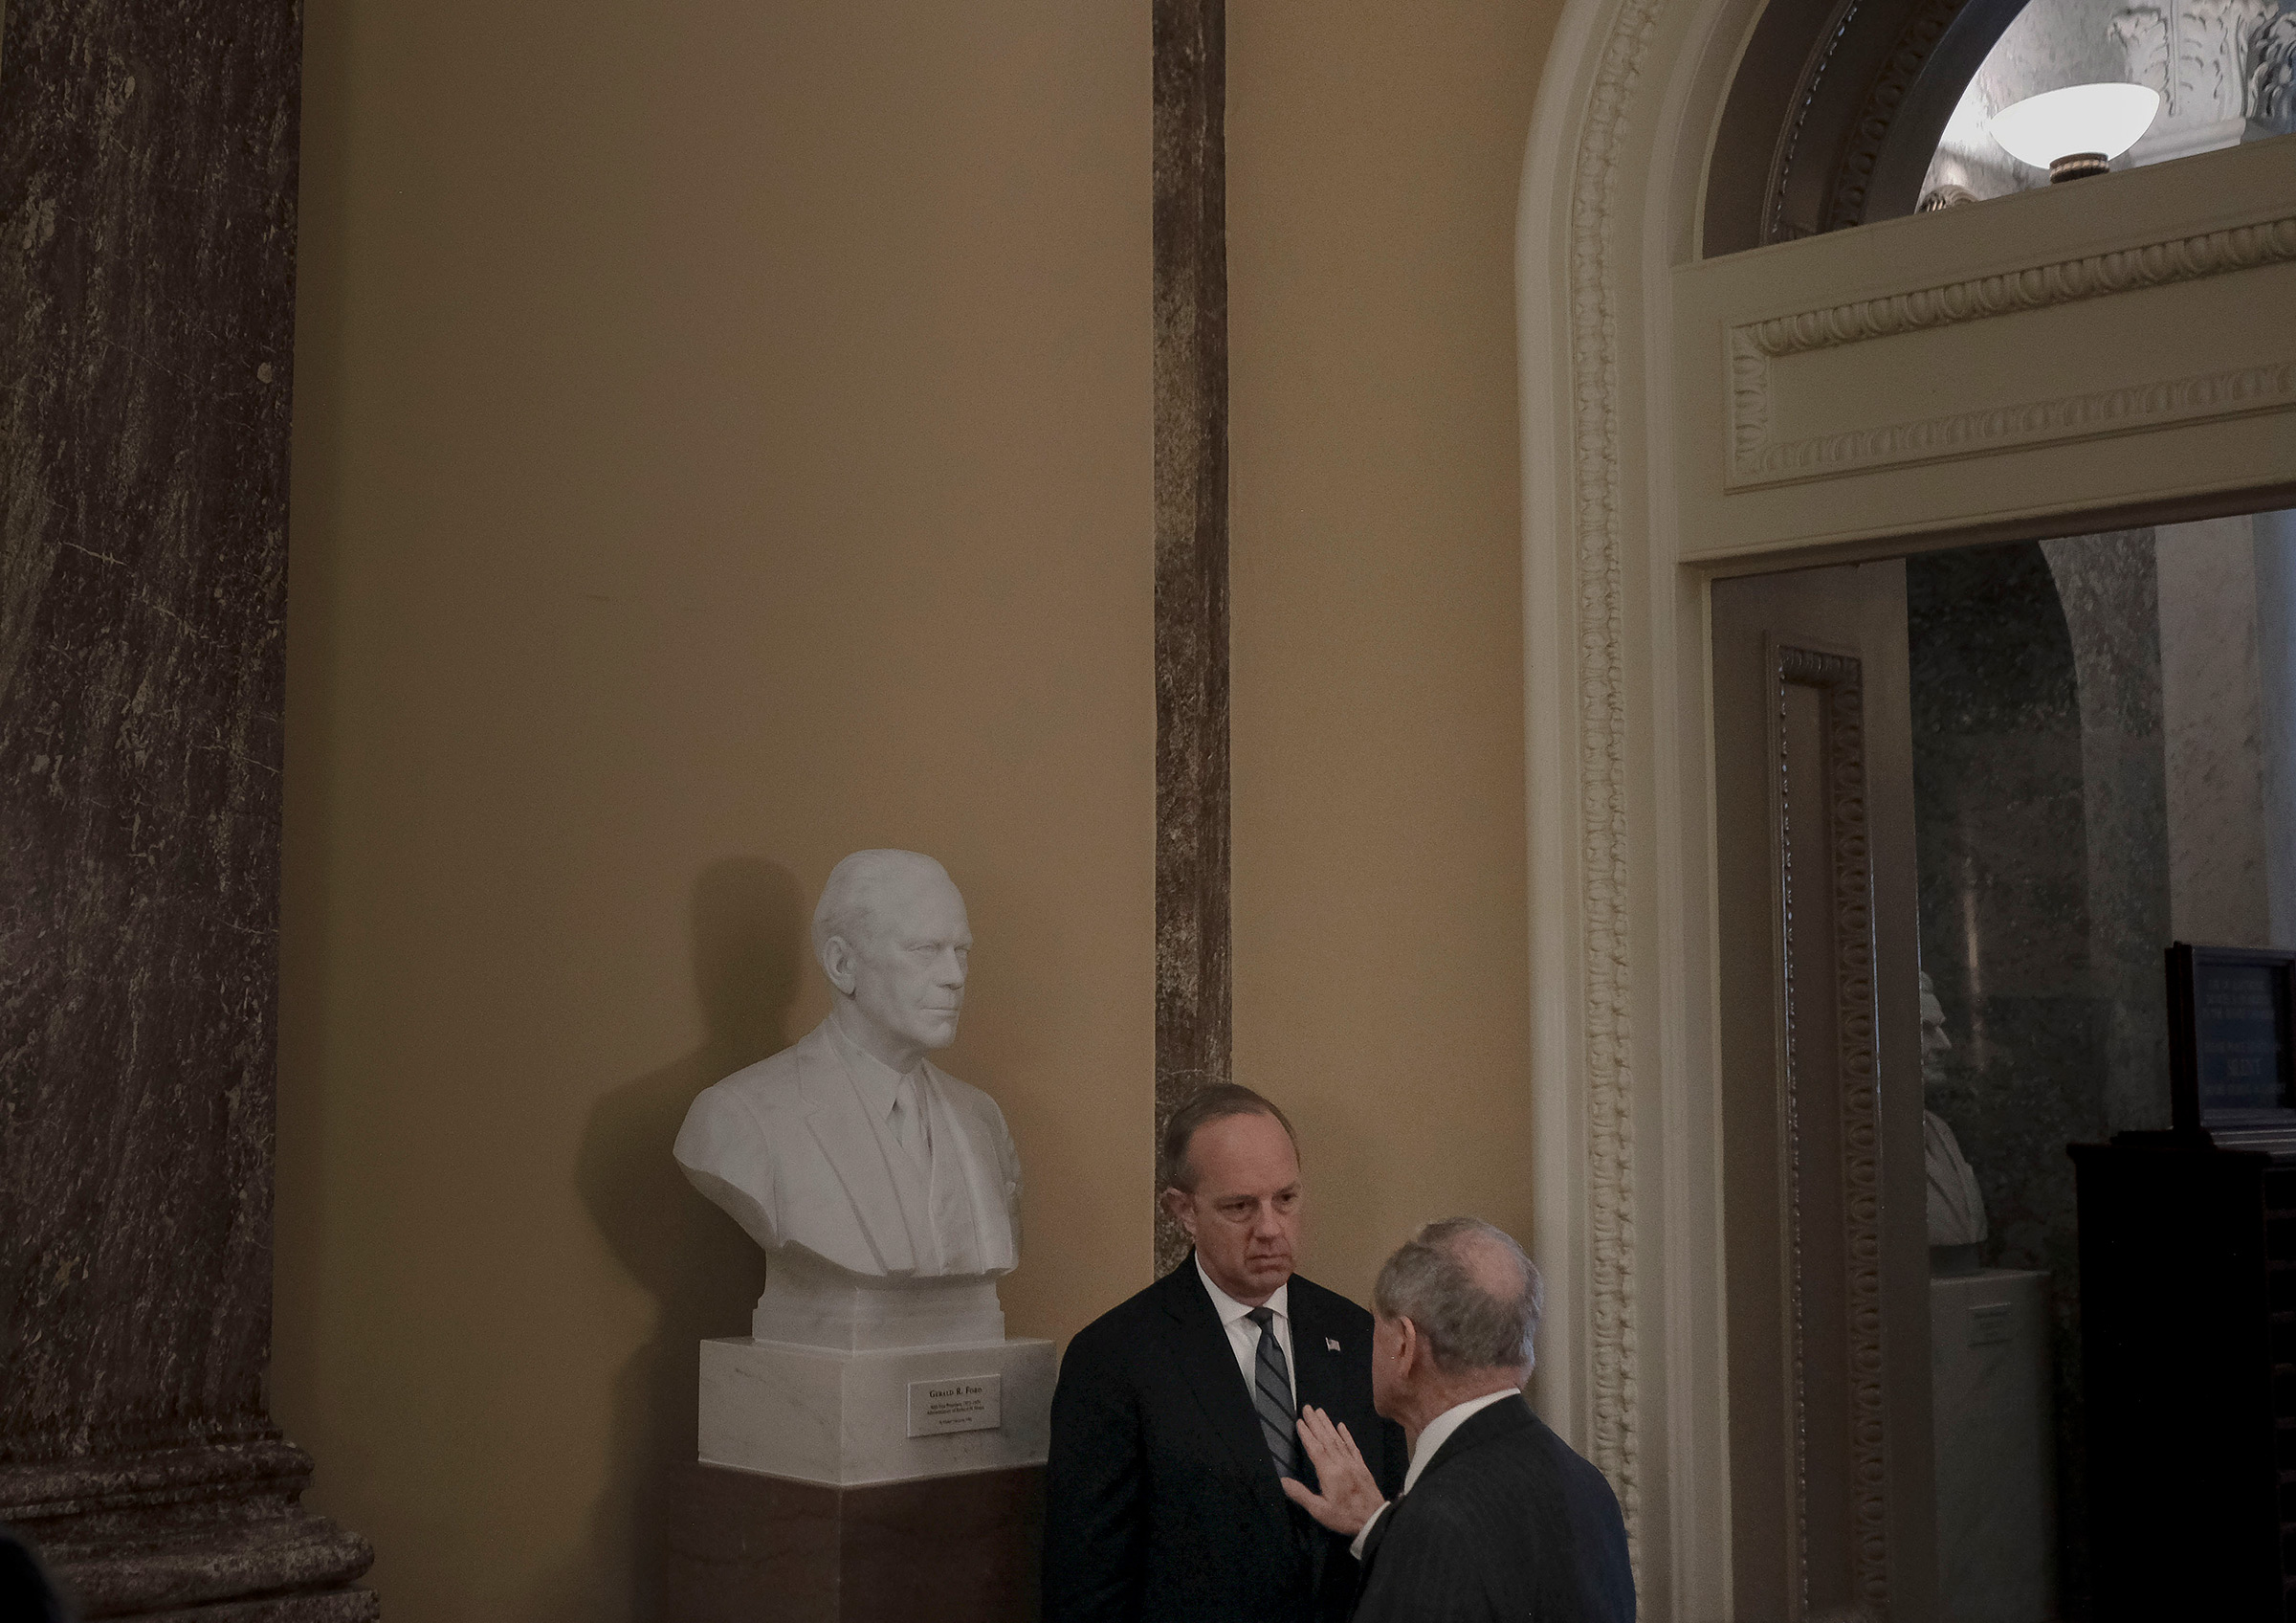 Sen. Jim Risch (R-Idaho) has a private conversation with White House legislative affairs director Eric Ueland off the floor of the senate before the impeachment trial at the Capitol in Washington, D.C., on Jan. 24, 2020.